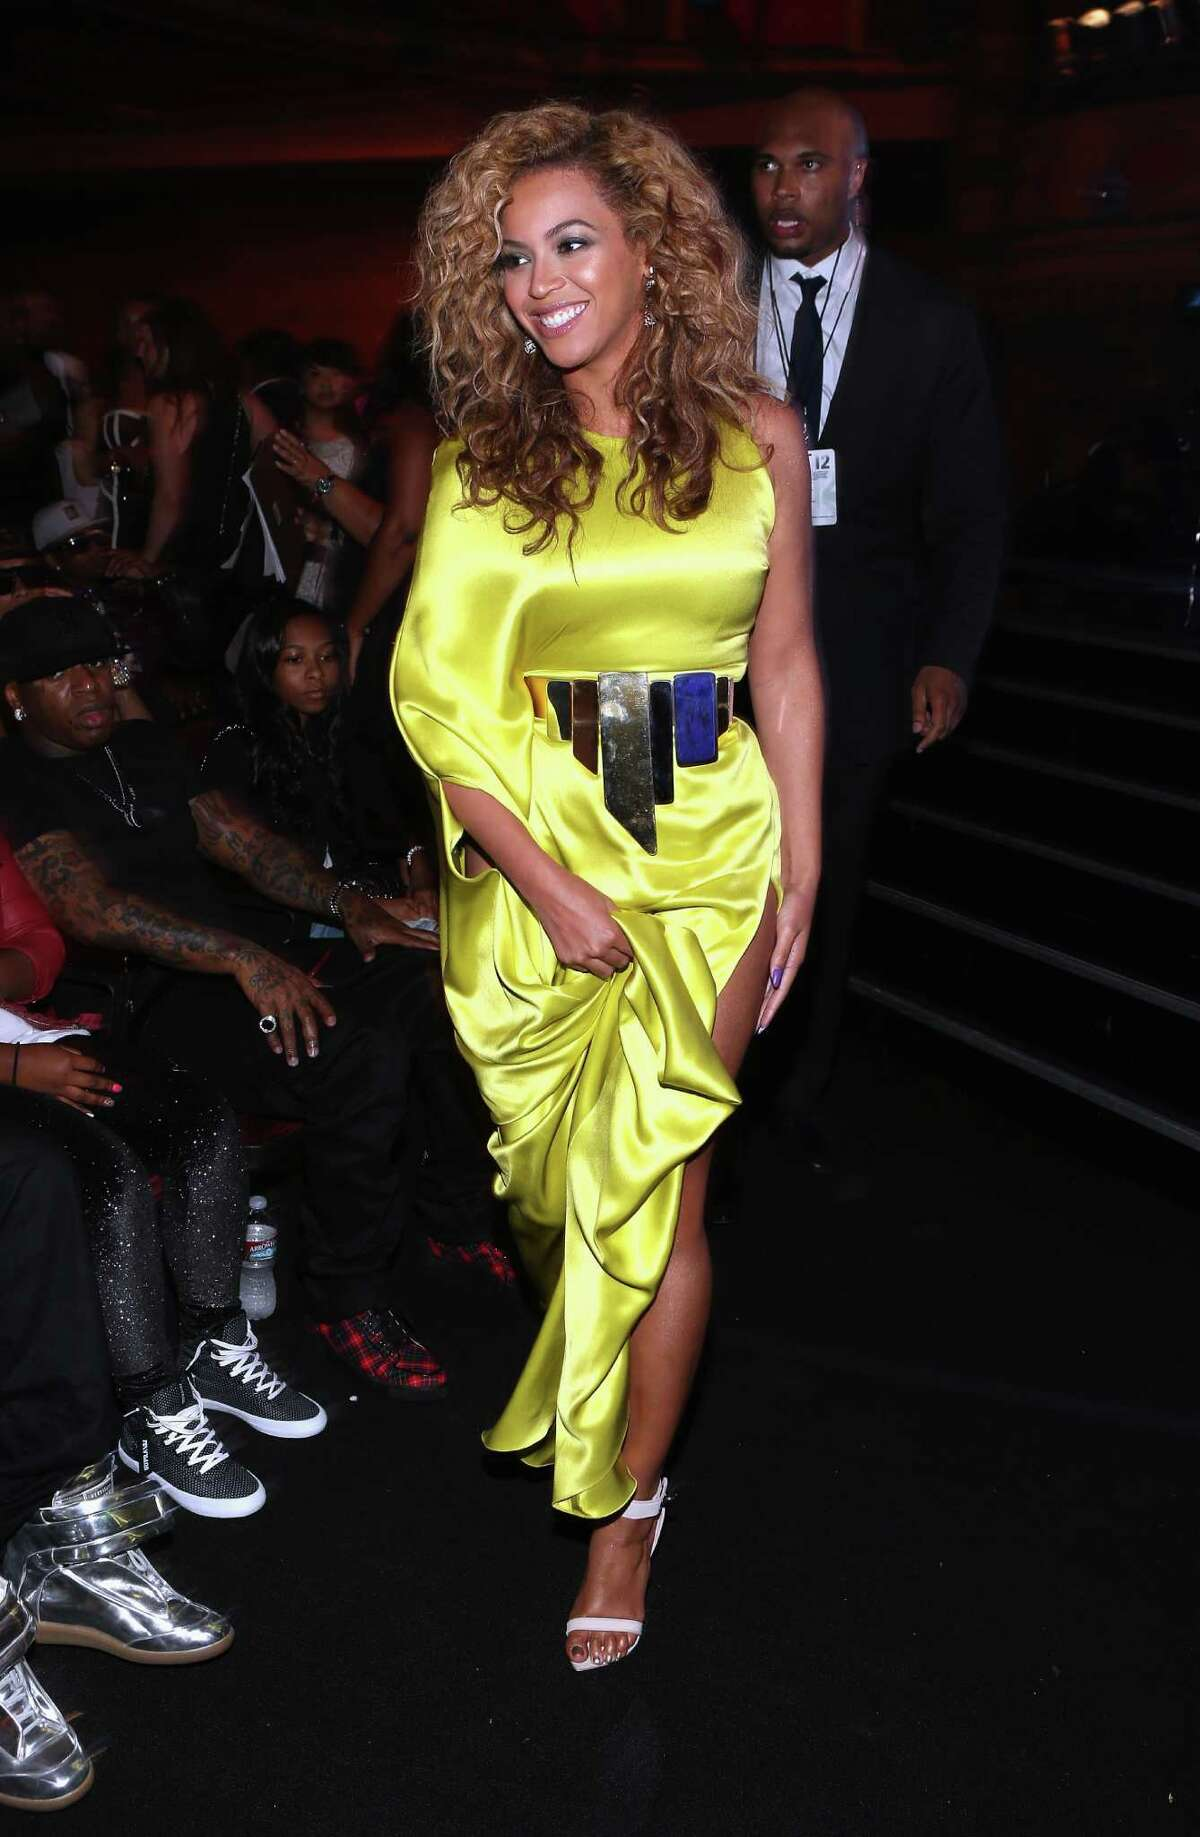 LOS ANGELES, CA - JULY 01: Singer Beyonce attends the 2012 BET Awards at The Shrine Auditorium on July 1, 2012 in Los Angeles, California.